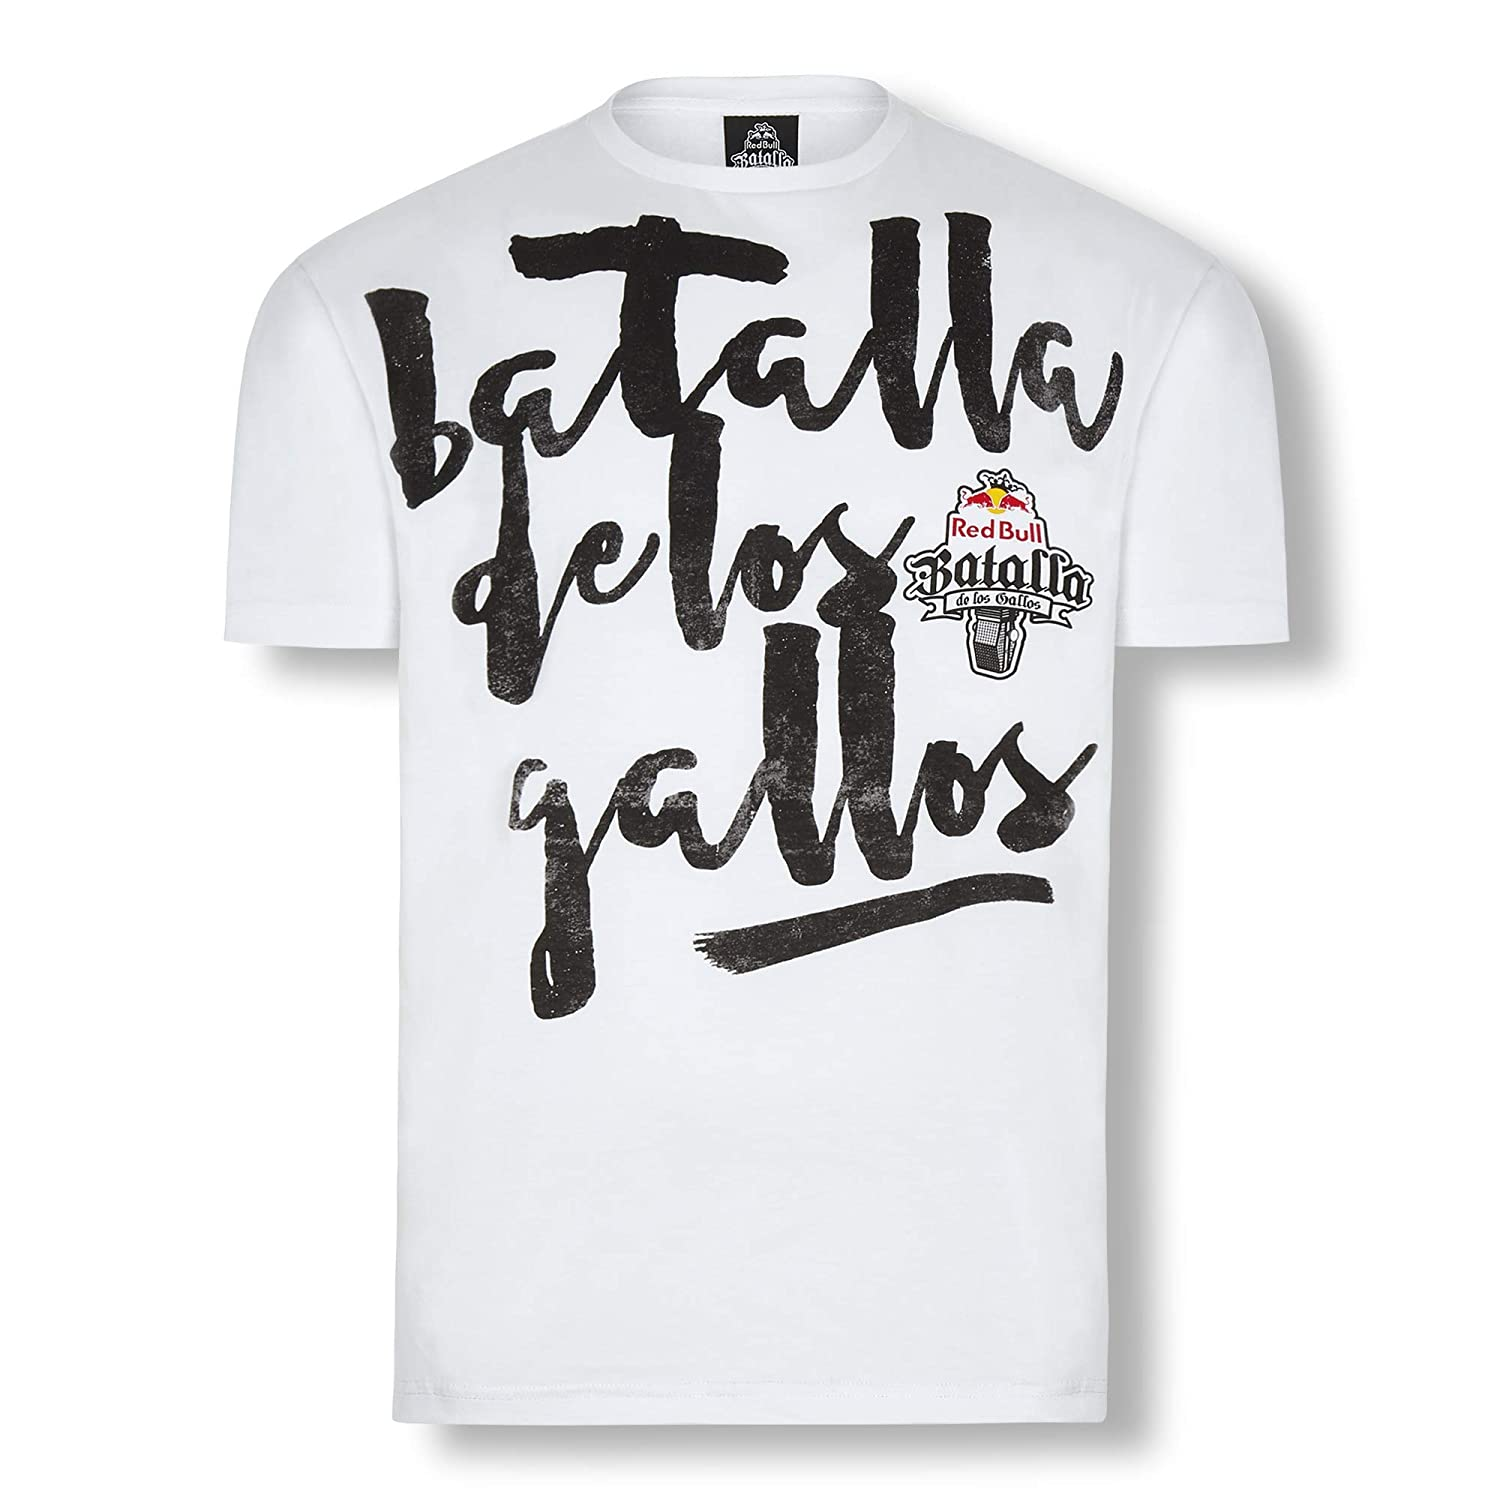 Red Bull Batalla Freestyle Camiseta, Blanco Hombre Top, Batalla de los Gallos Hip Hop Freestyle Original Ropa & Accesorios